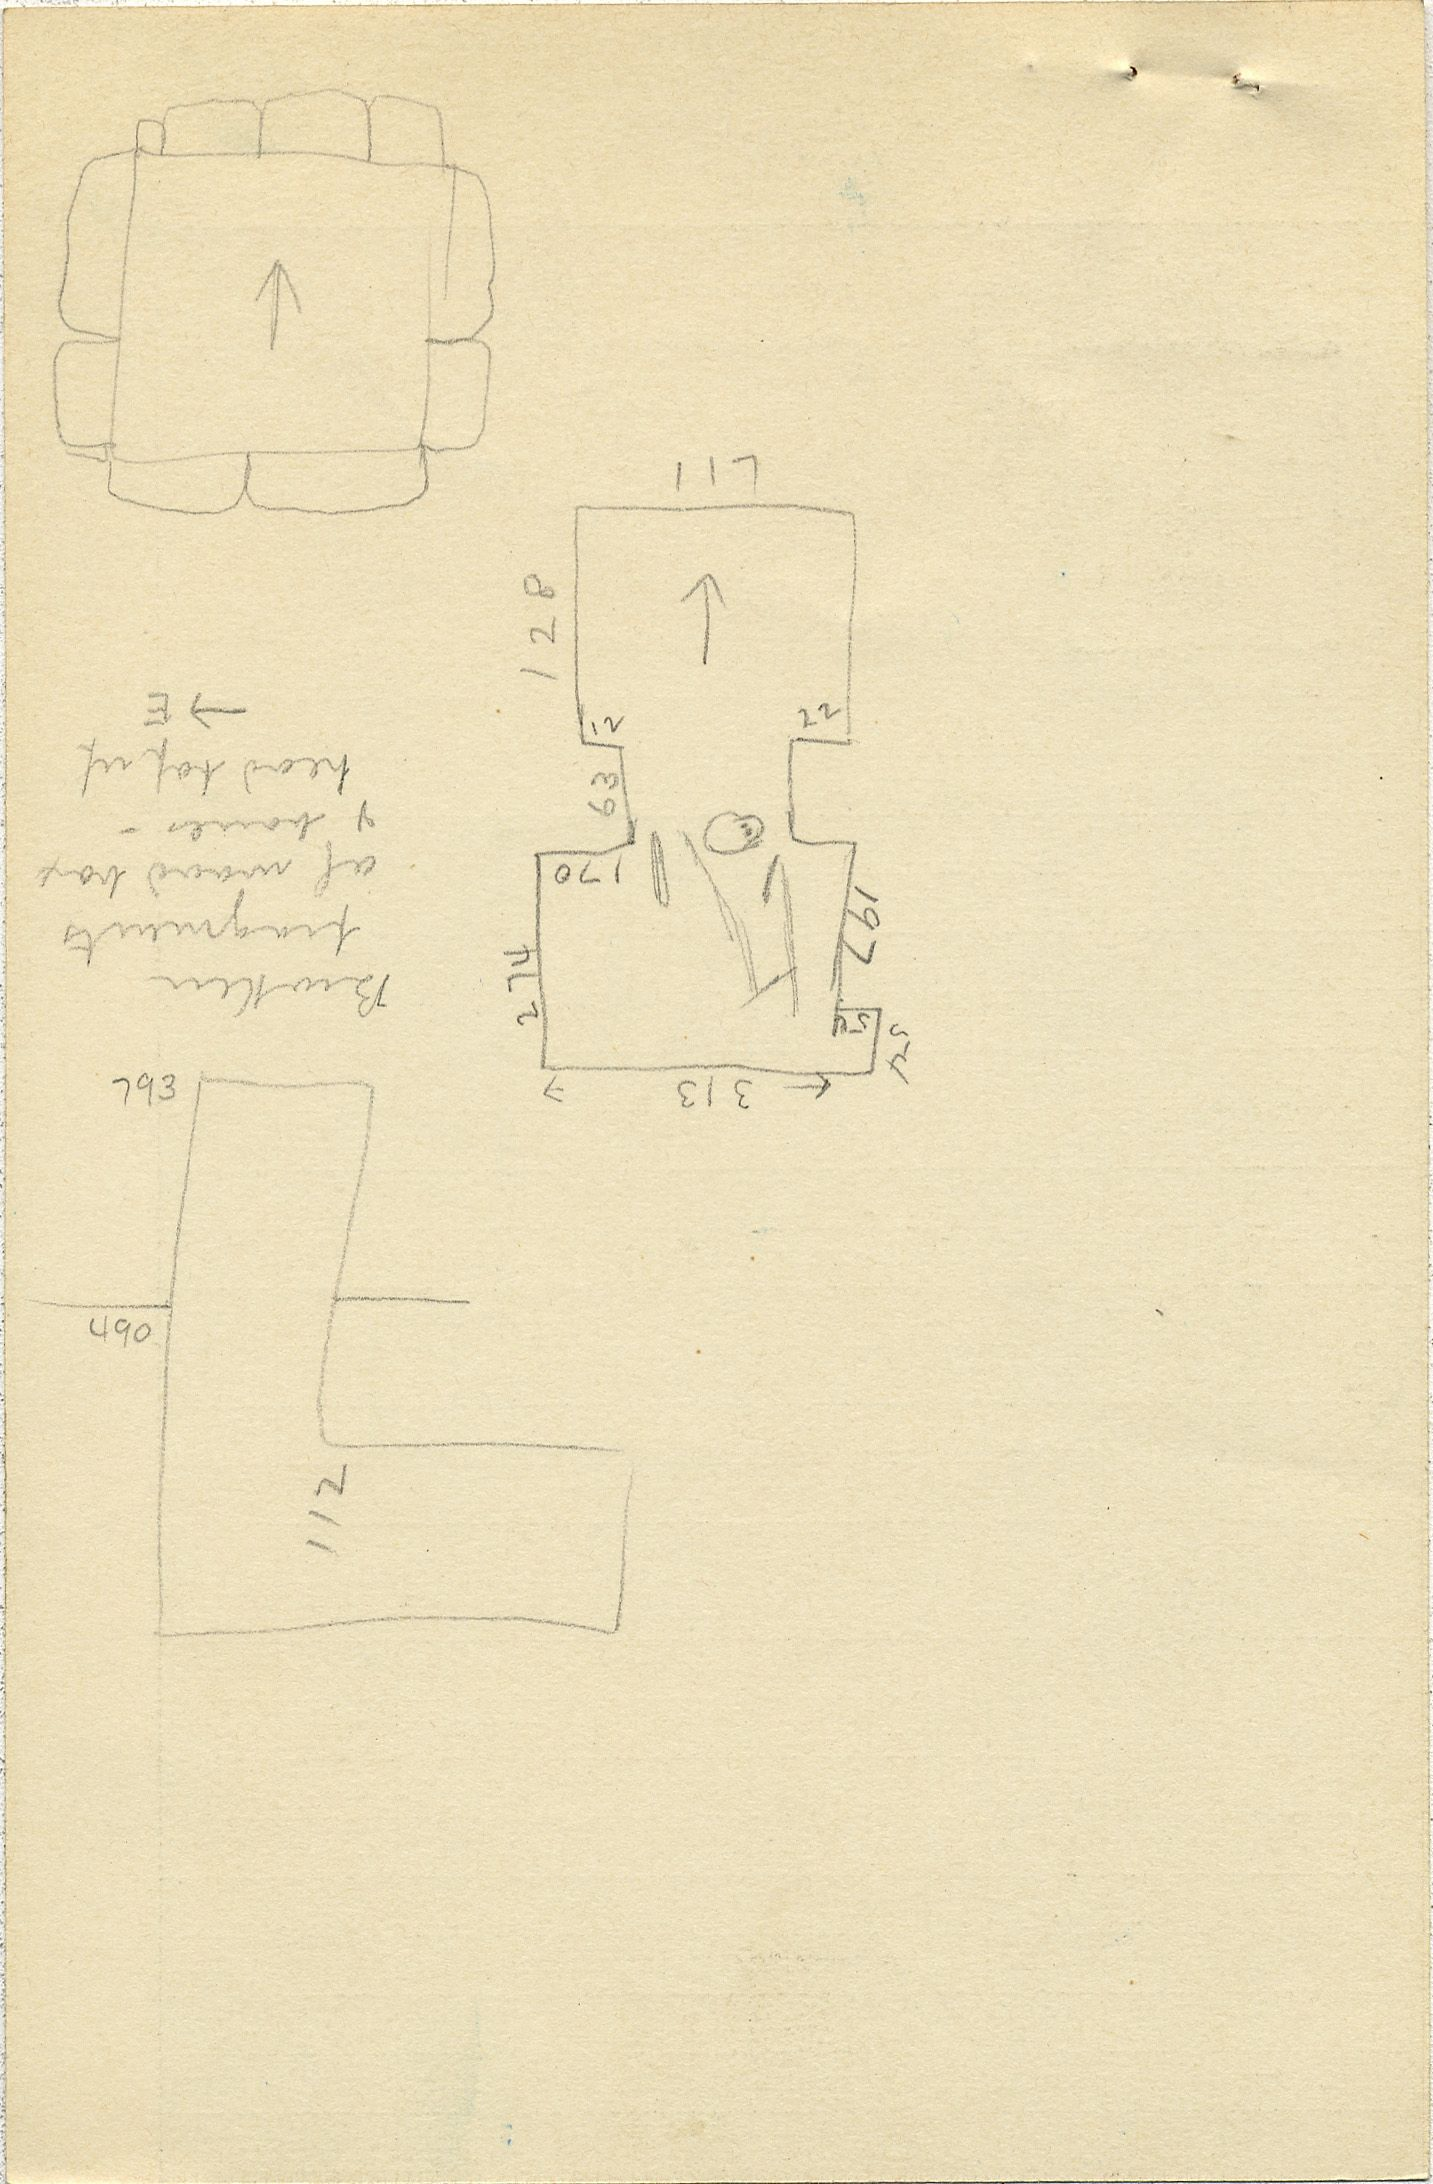 Maps and plans: G 2337, Shaft A, notes